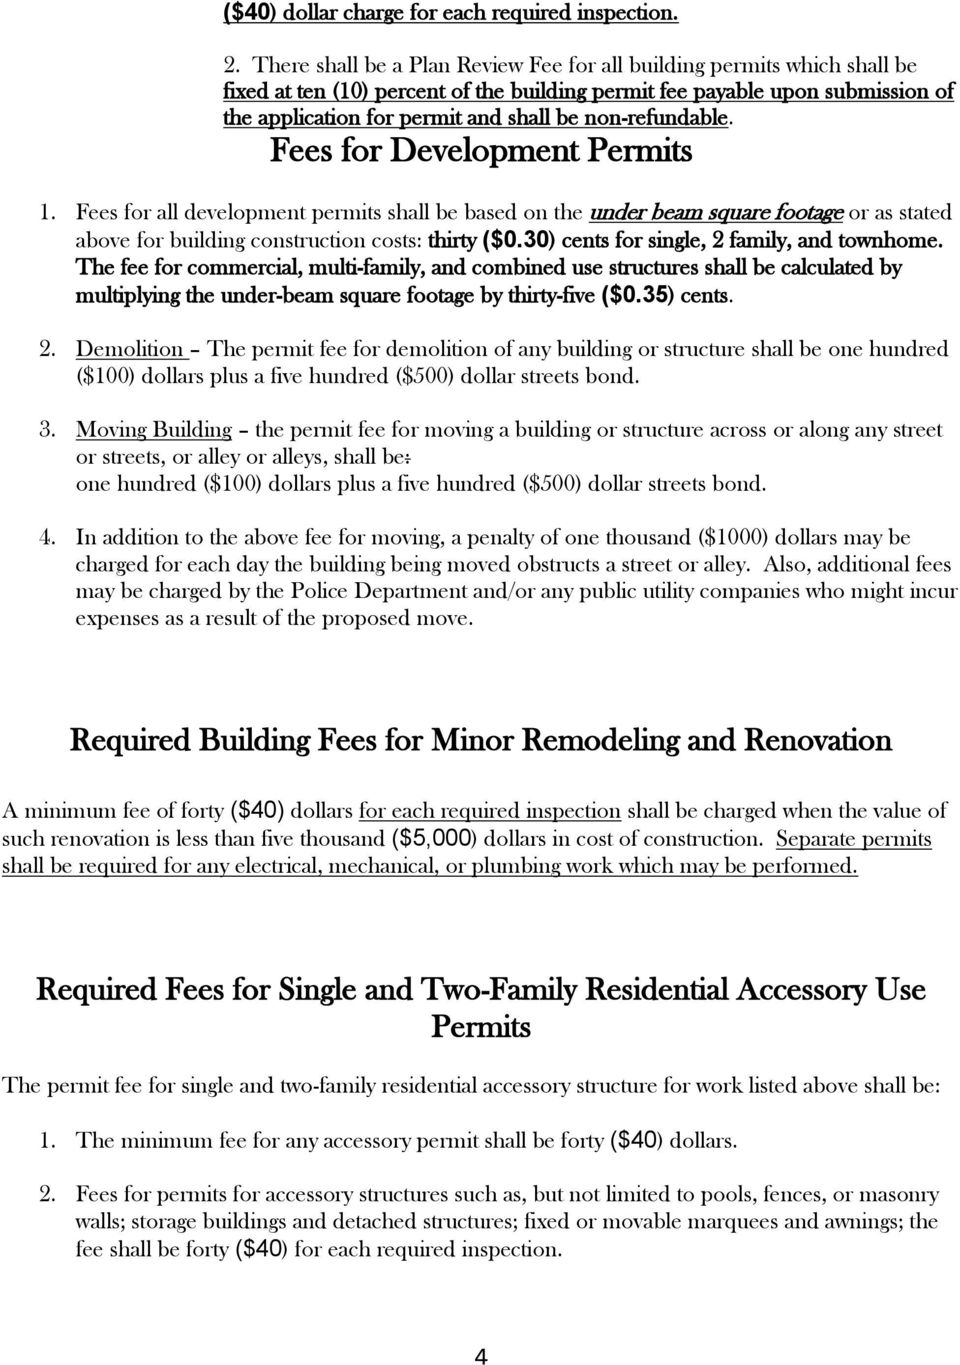 non-refundable. Fees for Development Permits 1. Fees for all development permits shall be based on the under beam square footage or as stated above for building construction costs: thirty ($0.